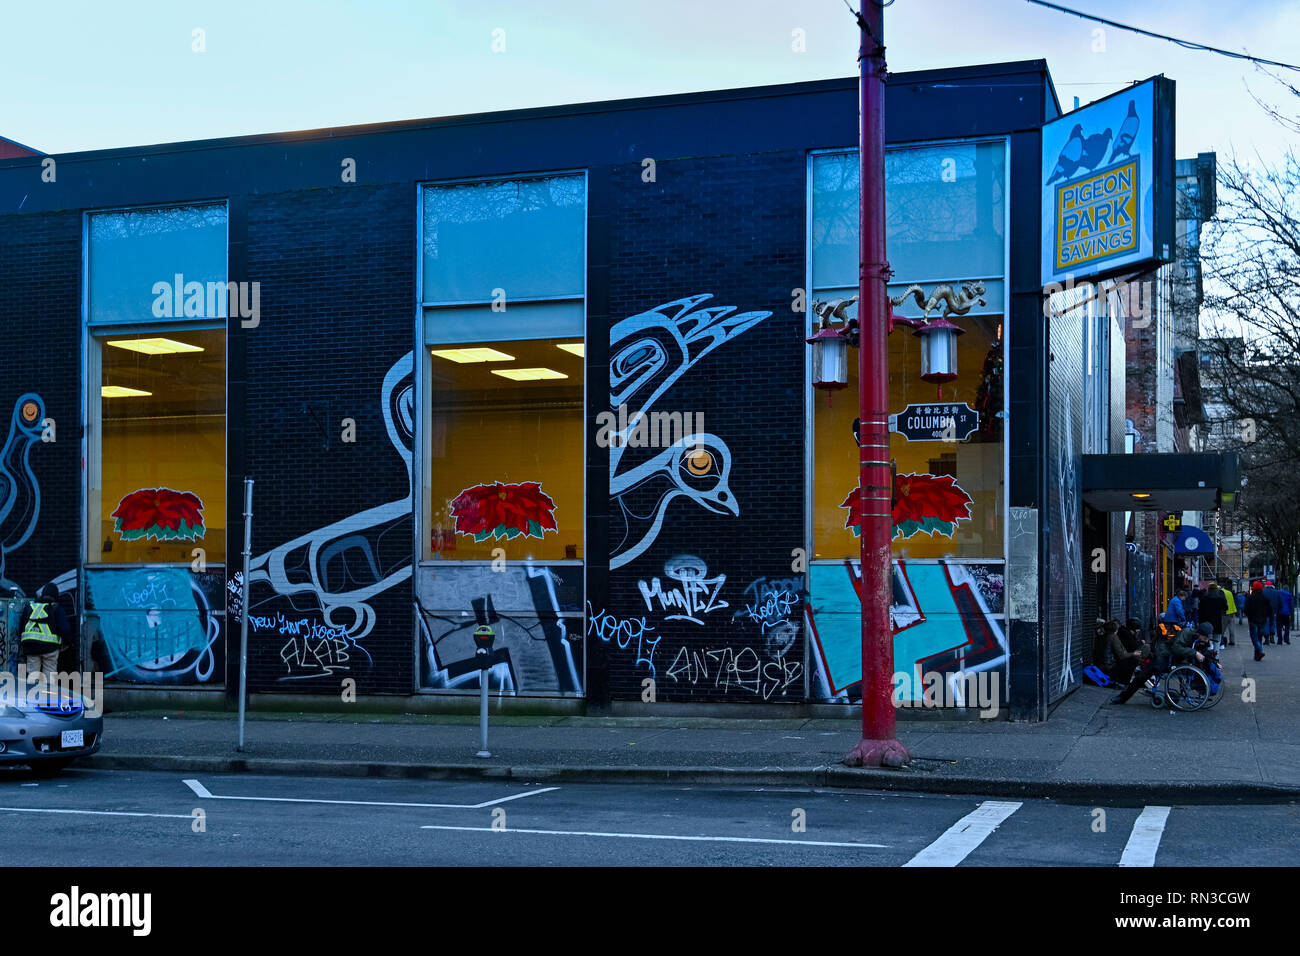 Pigeon Park Savings, Downtown Eastside Community Bank, operate by Portland Hotel Society, Vancouver, British Columbia, Canada - Stock Image